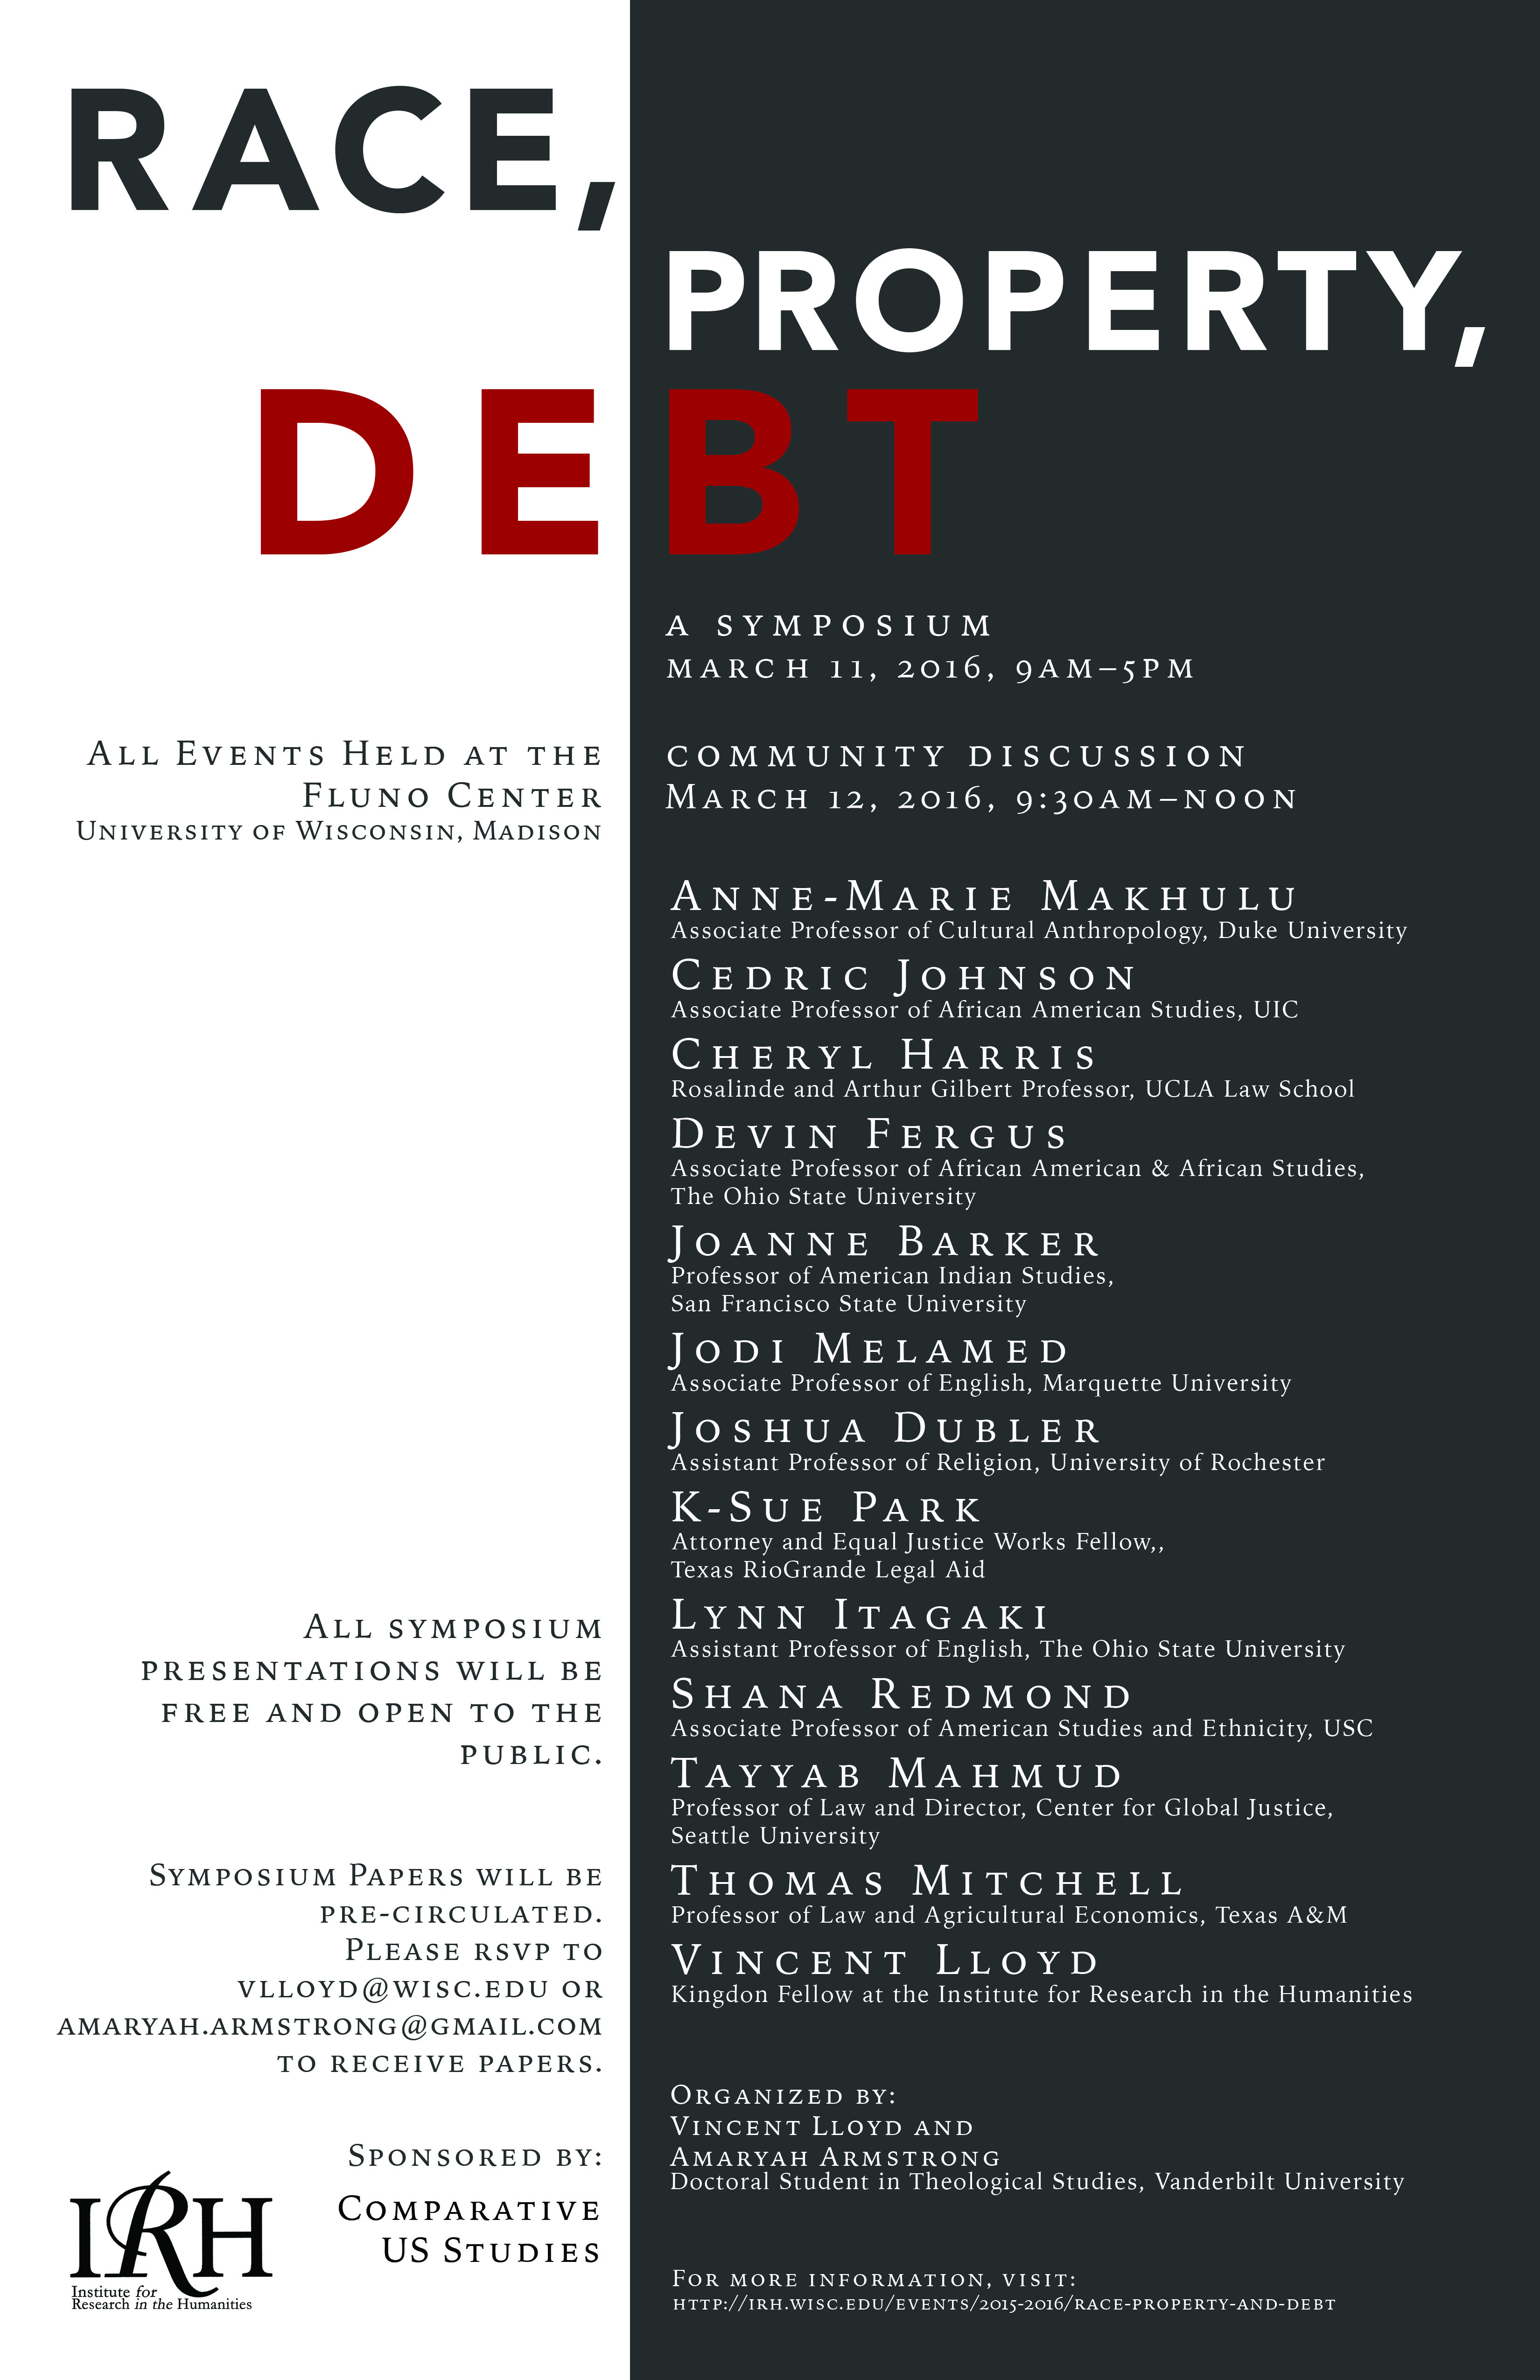 Poster for Event Race, Property, Debt with all speaker names and associations